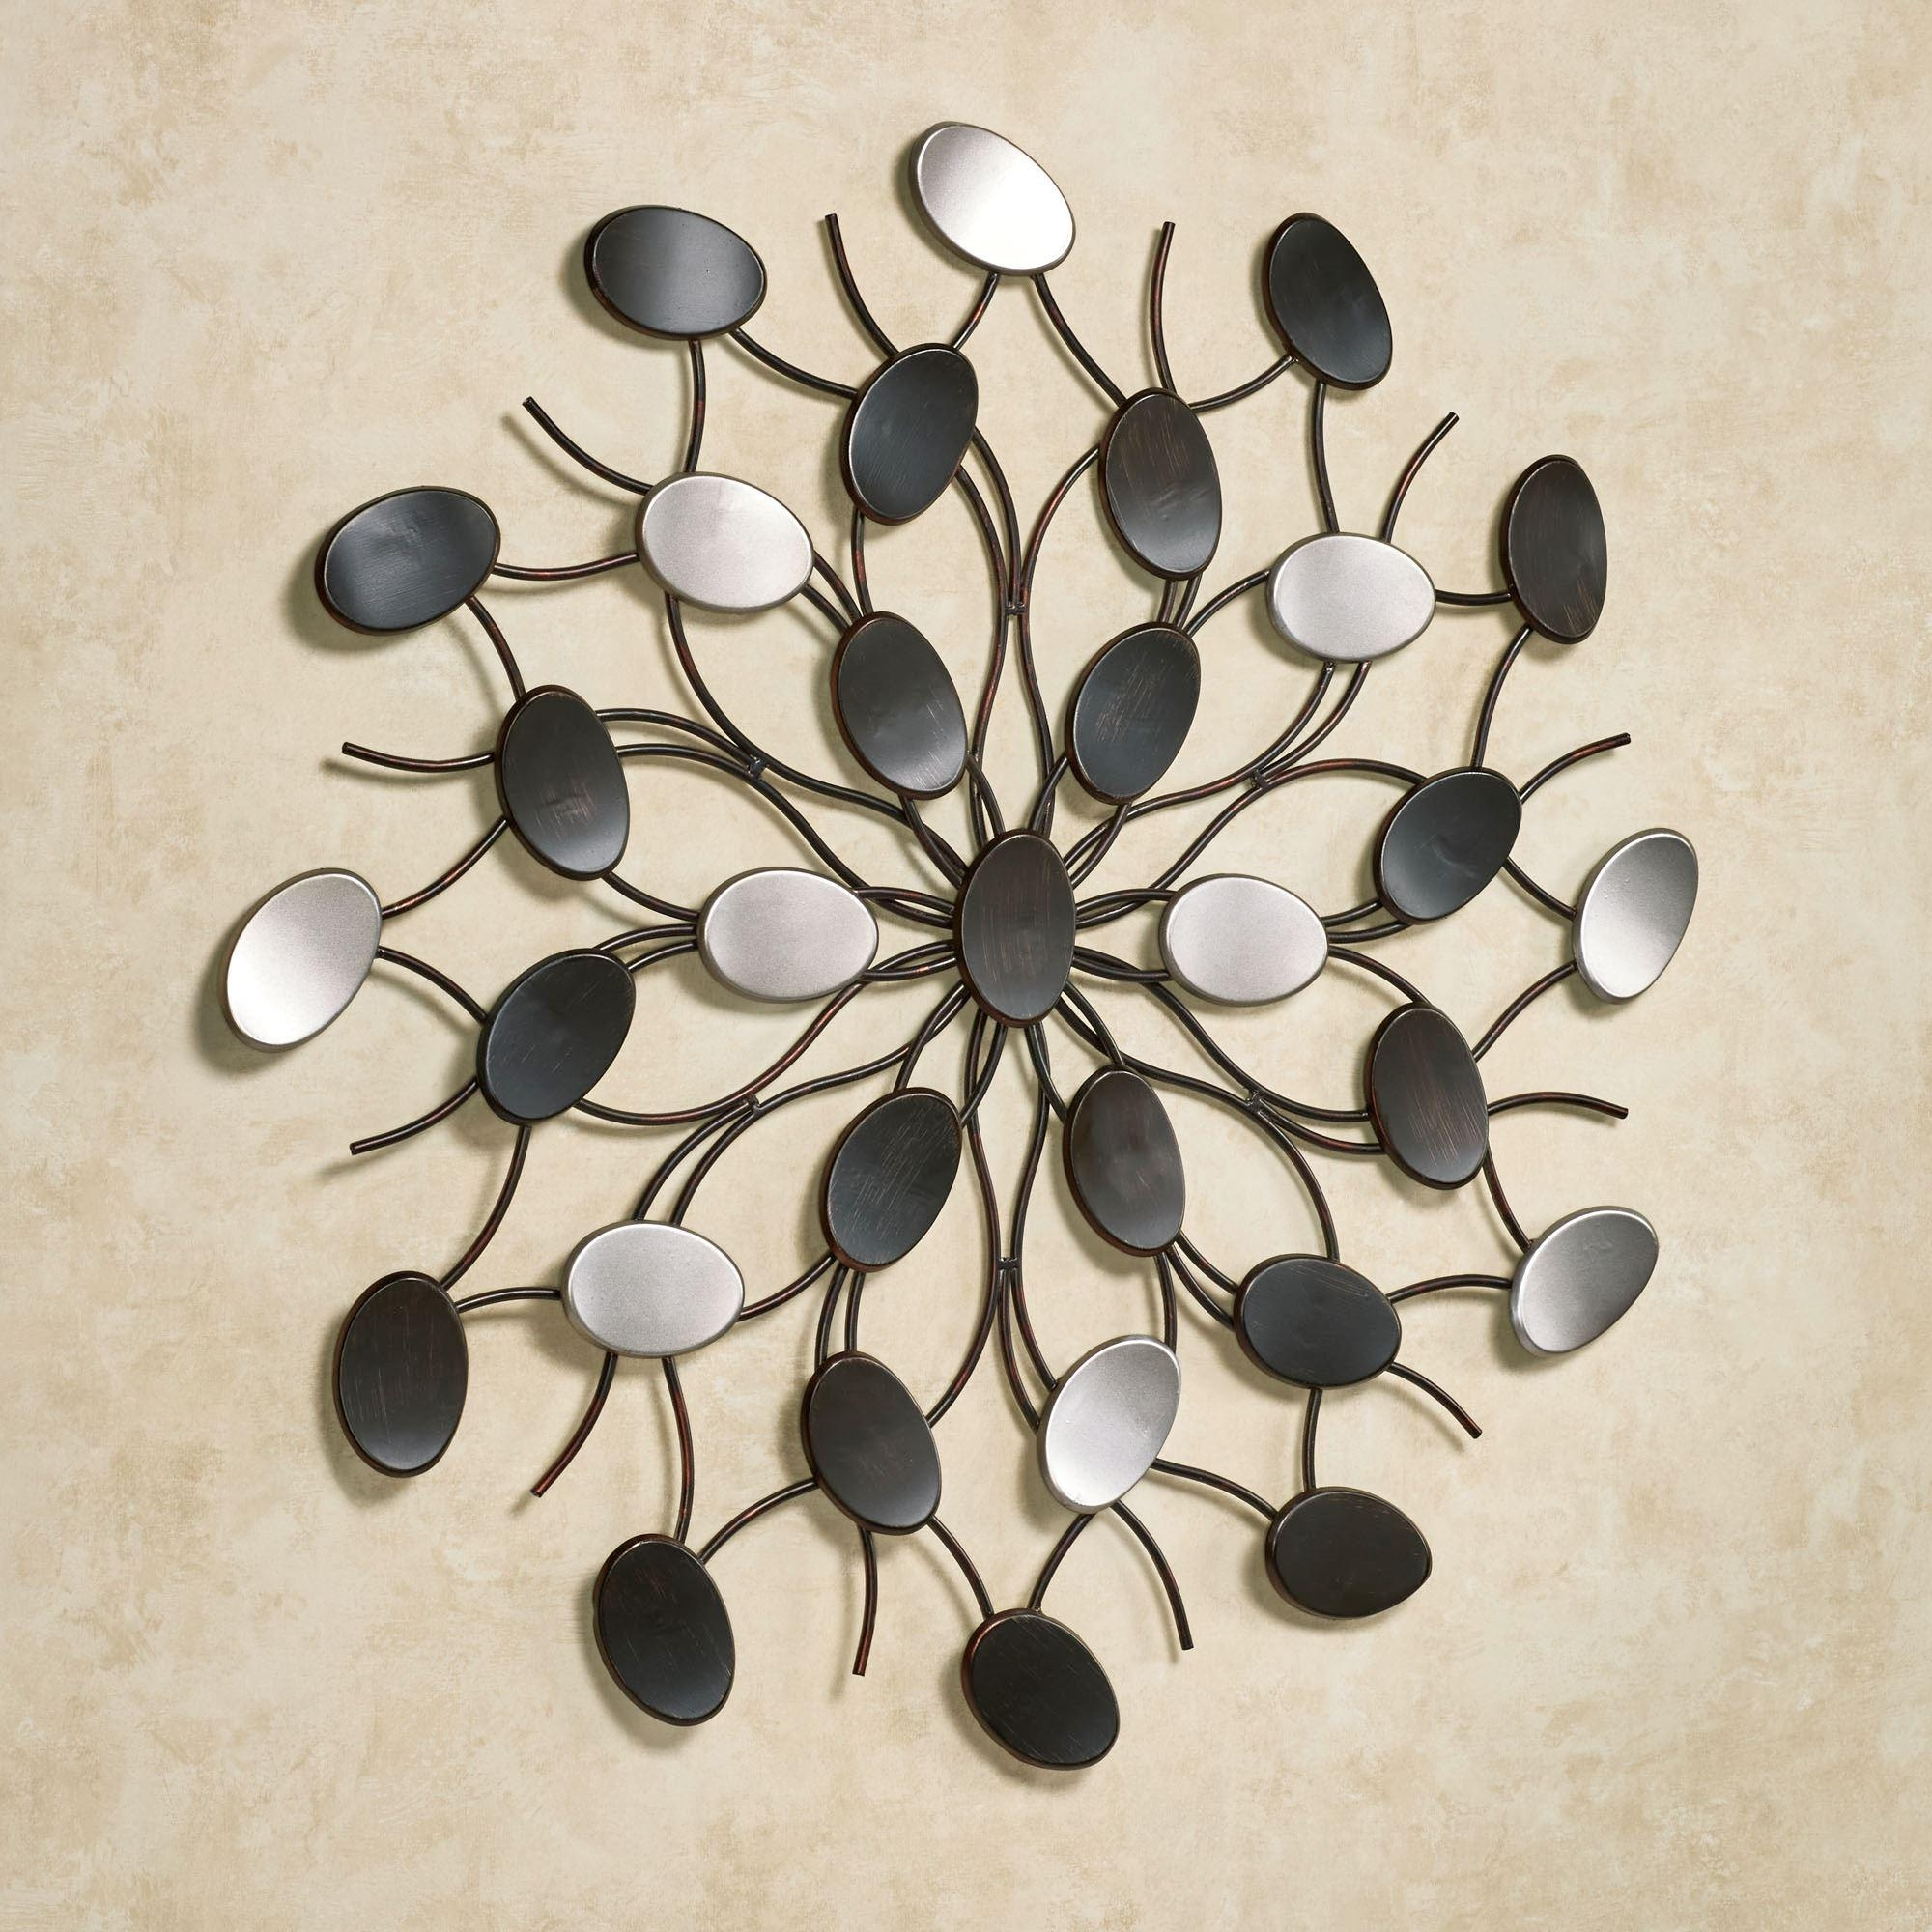 Radiant Petals Abstract Metal Wall Art With Metallic Wall Art (View 7 of 20)